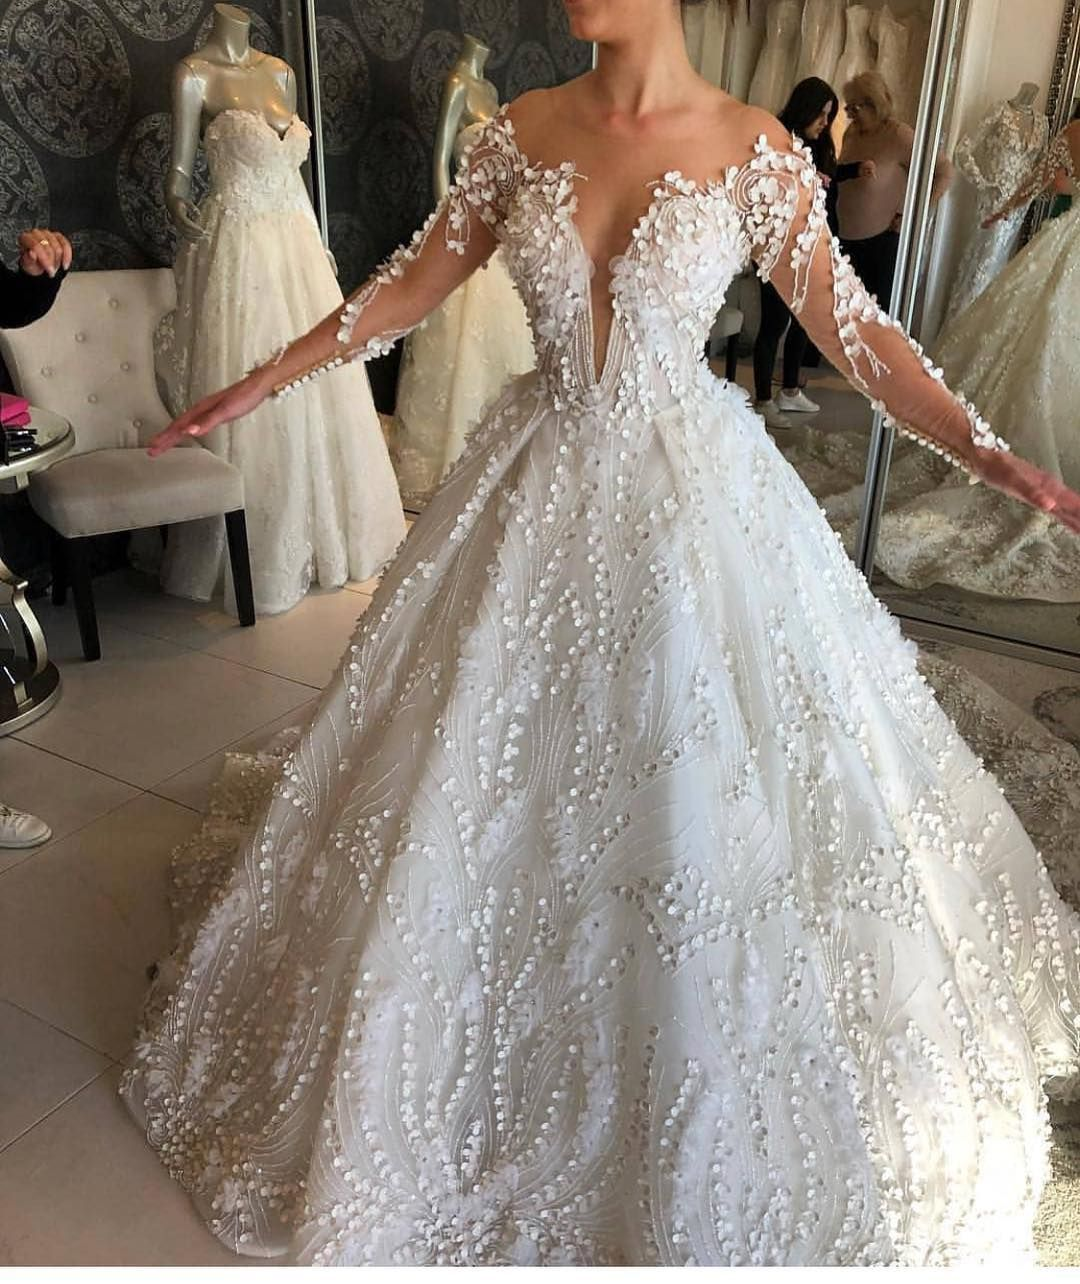 dac58209e072 We can make a custom bridal gown as you see here. Or your  weddingdress can  be made with any modifications you need. We are US dressmakers who  specialize in ...